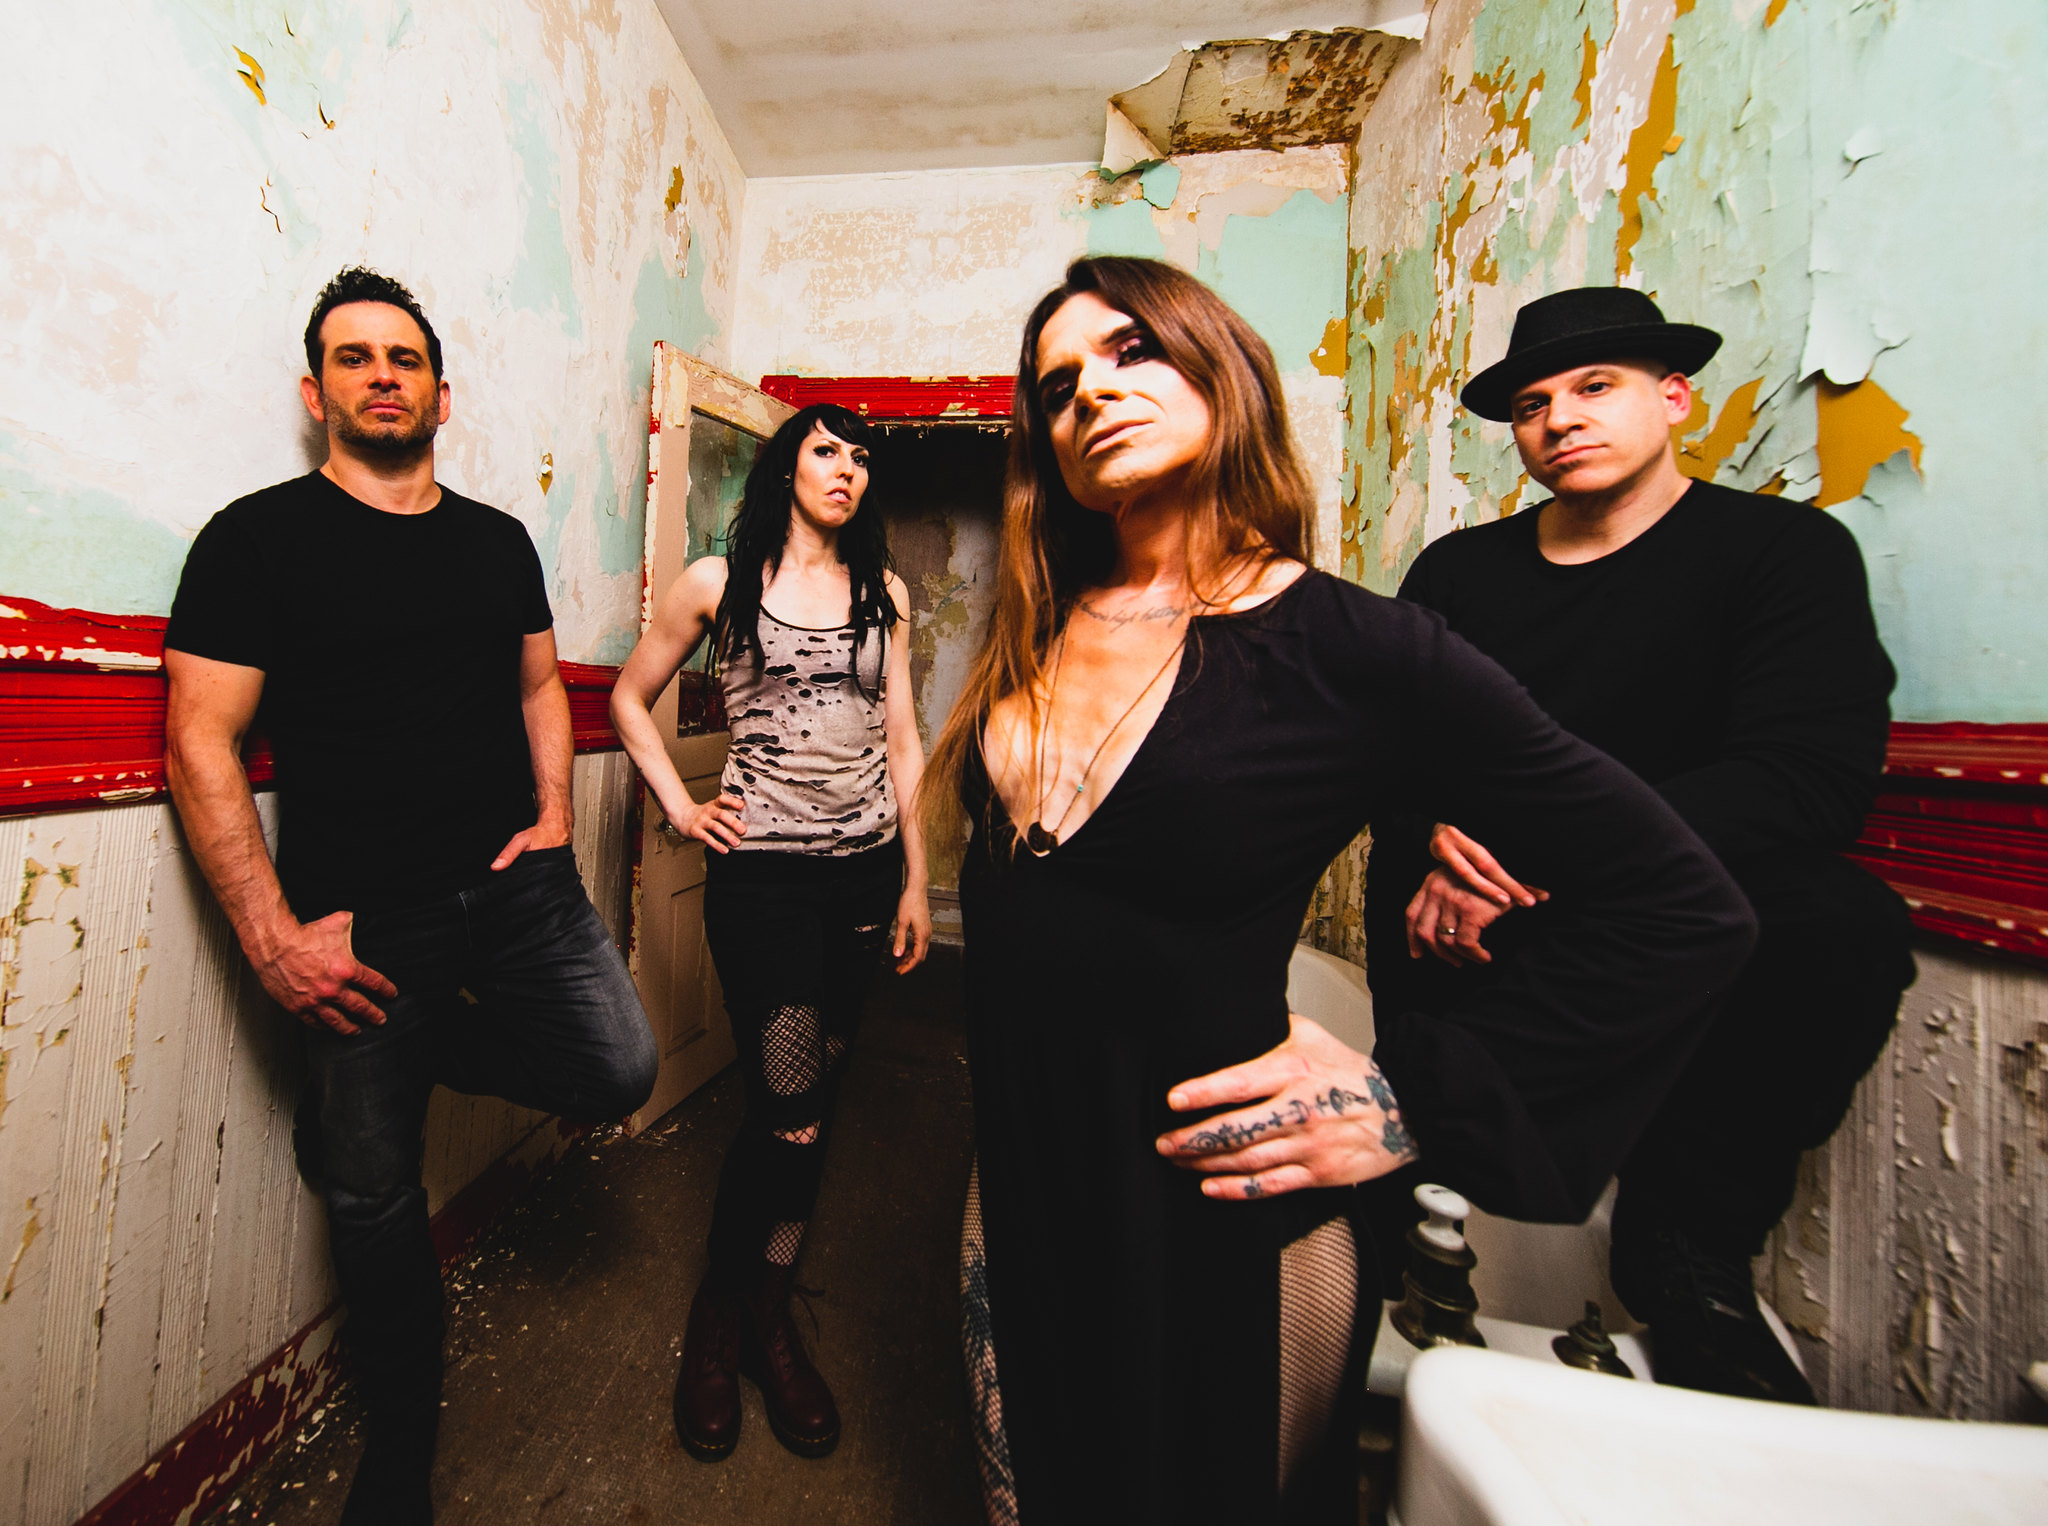 Life of Agony Photo by Gino DePinto